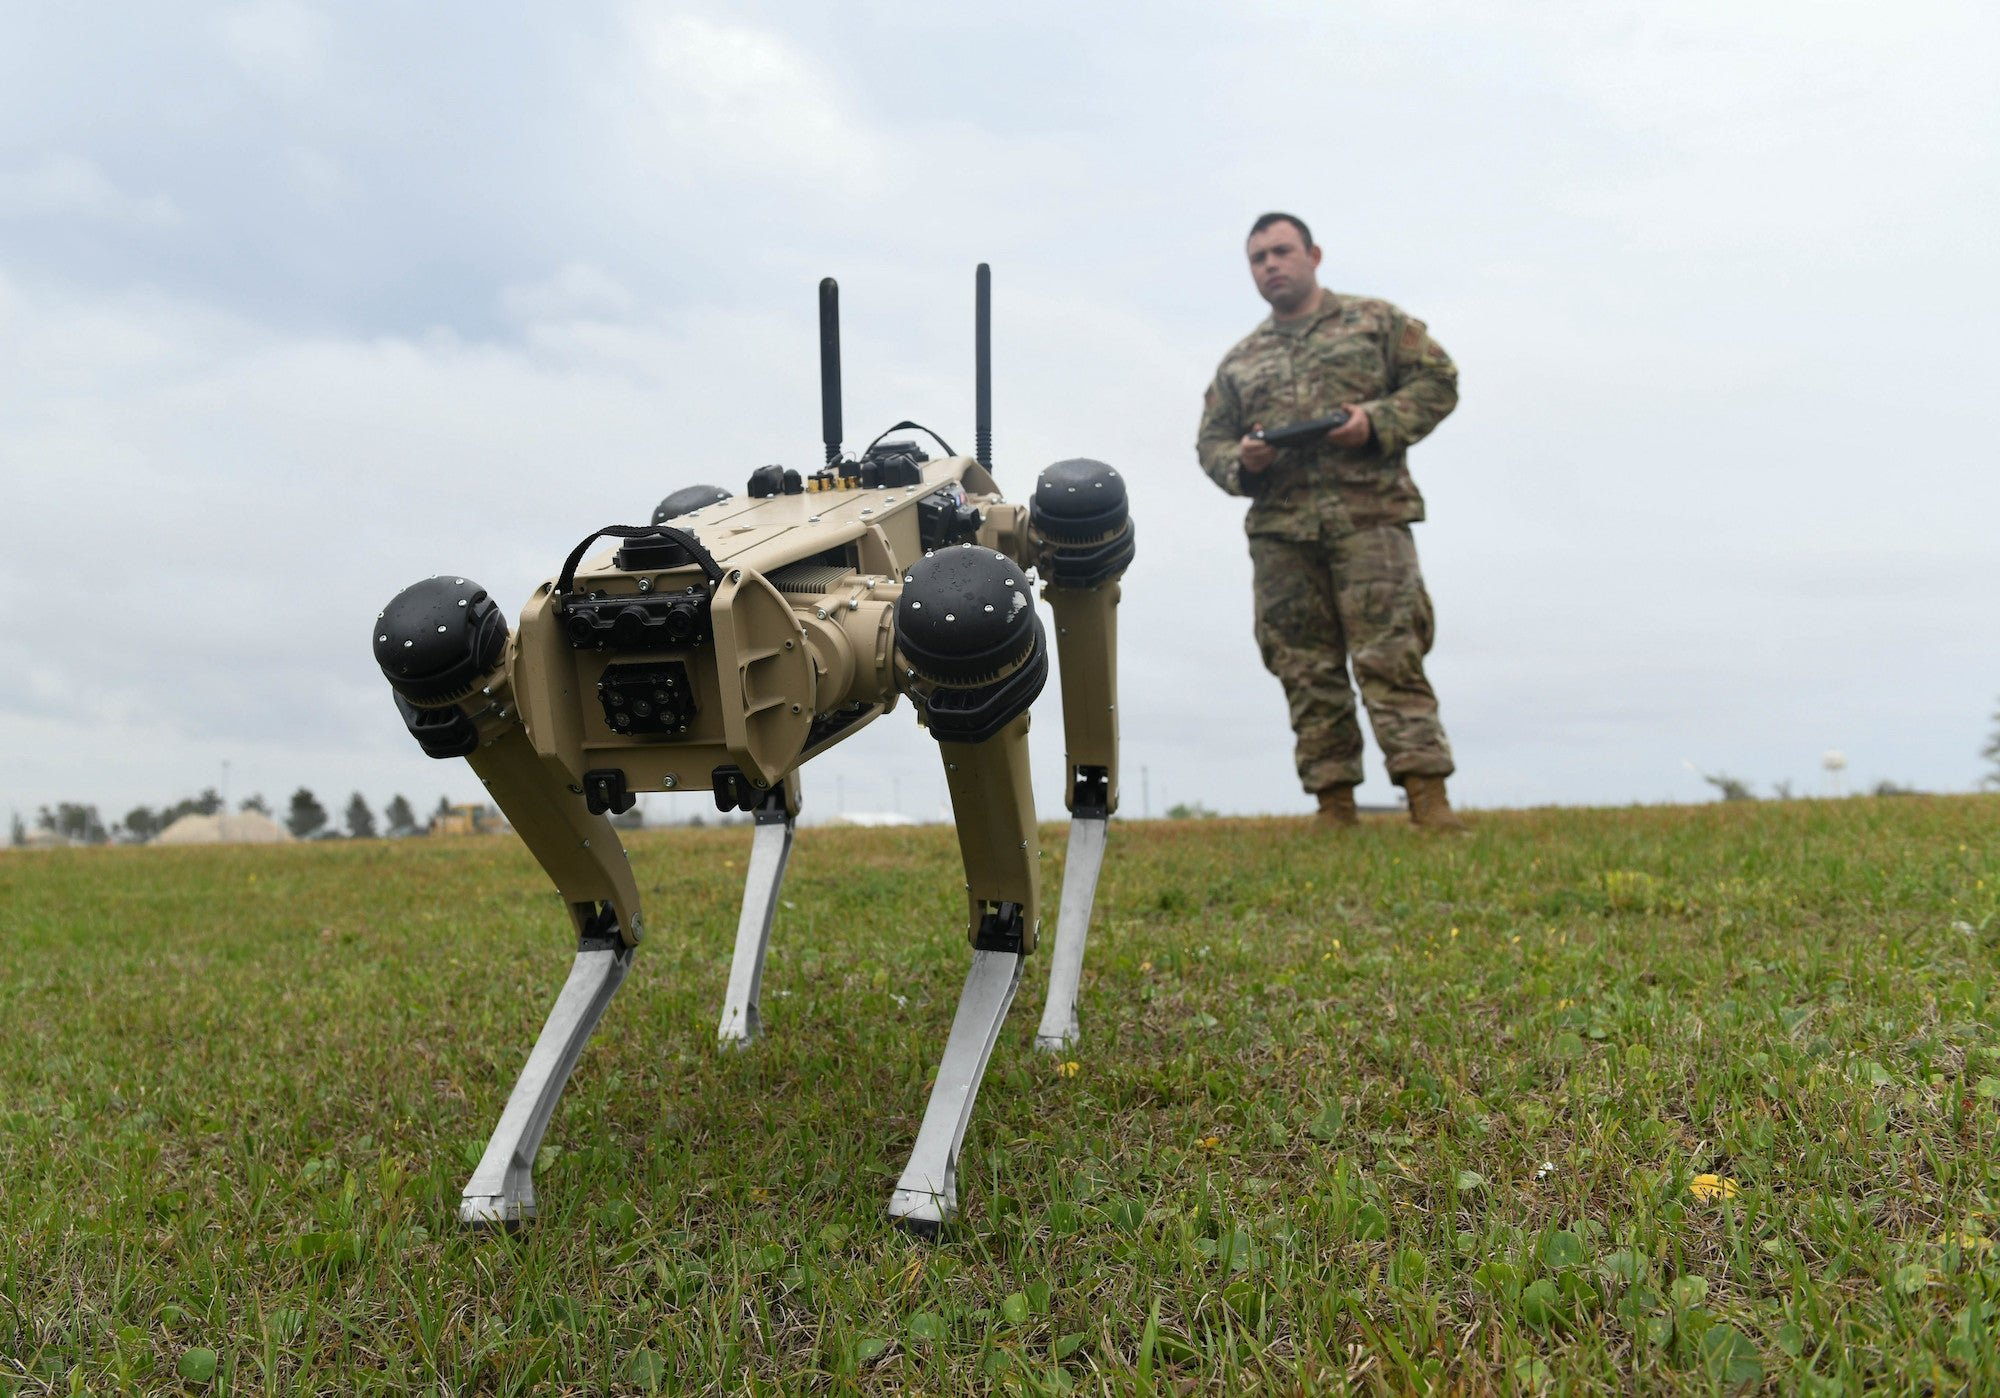 The military's new guard dogs are here